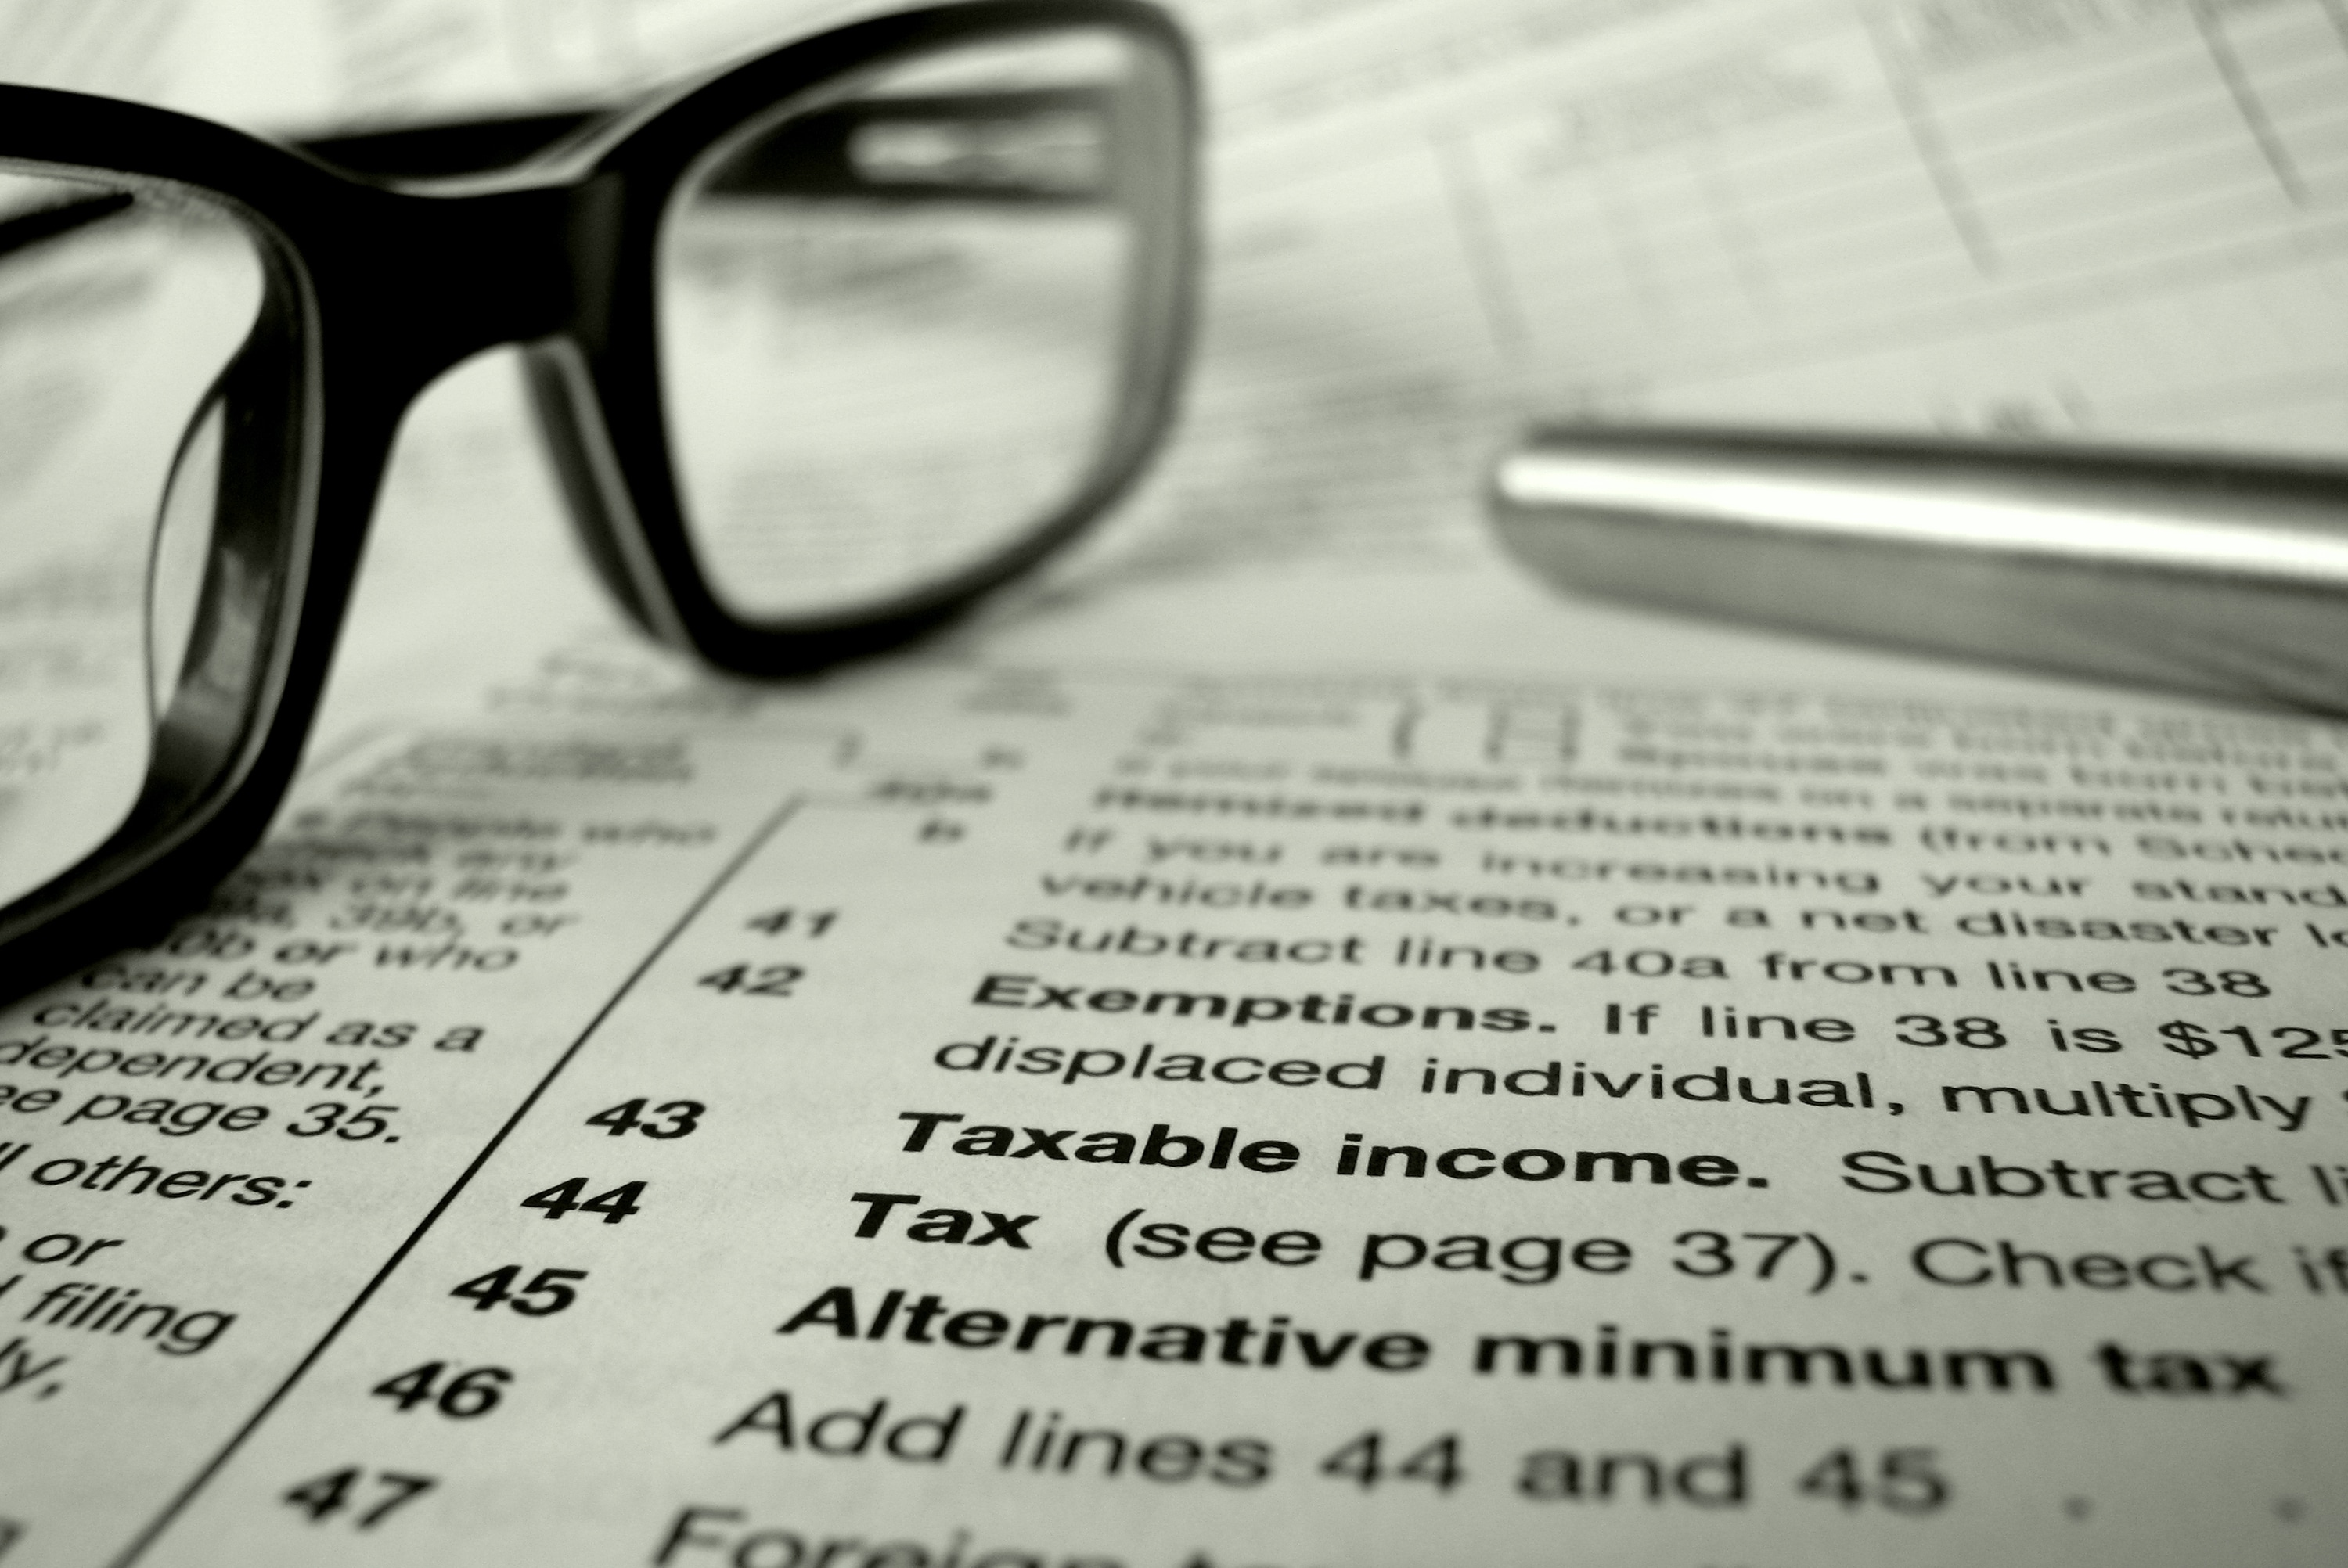 How to File Your Tax Return - 2019 Basics & Guide